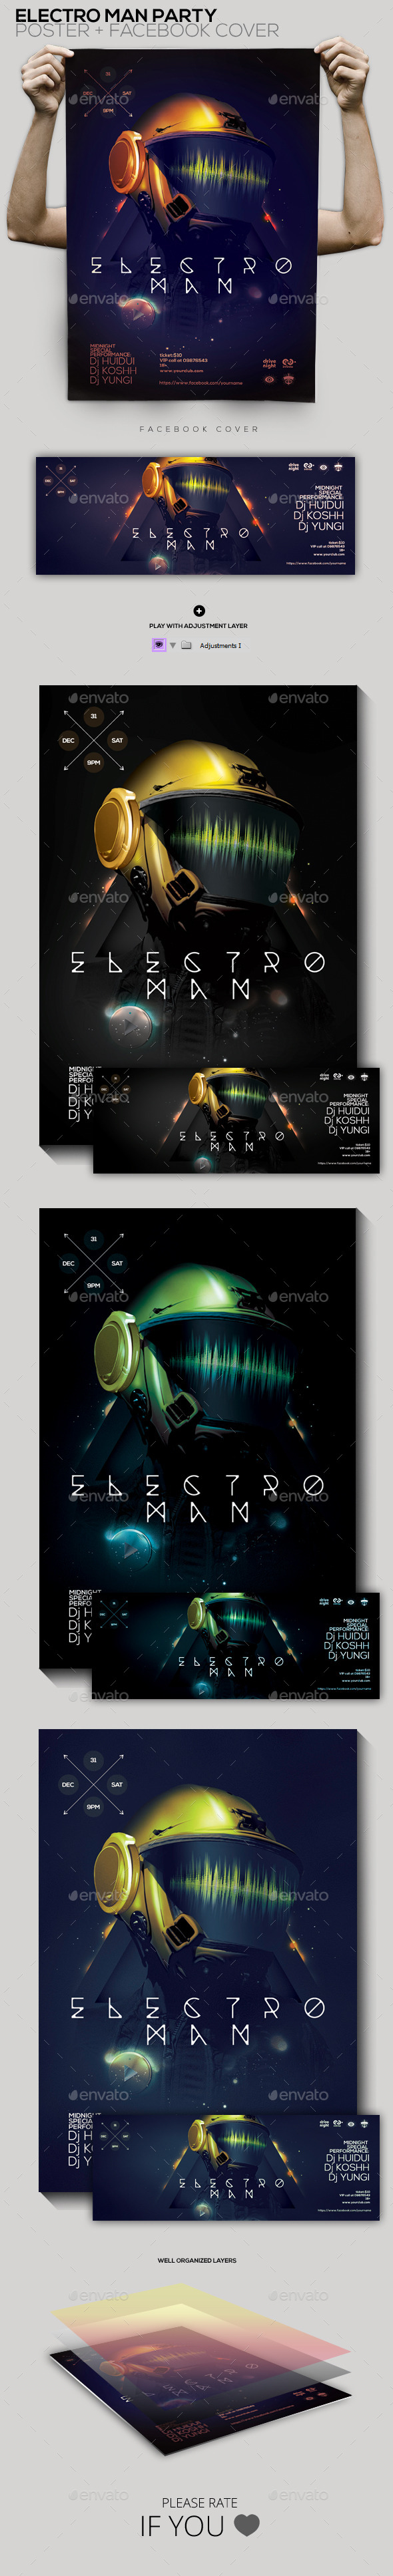 Electro Man Party Flyer/Poster/Facebook Cover - Clubs & Parties Events